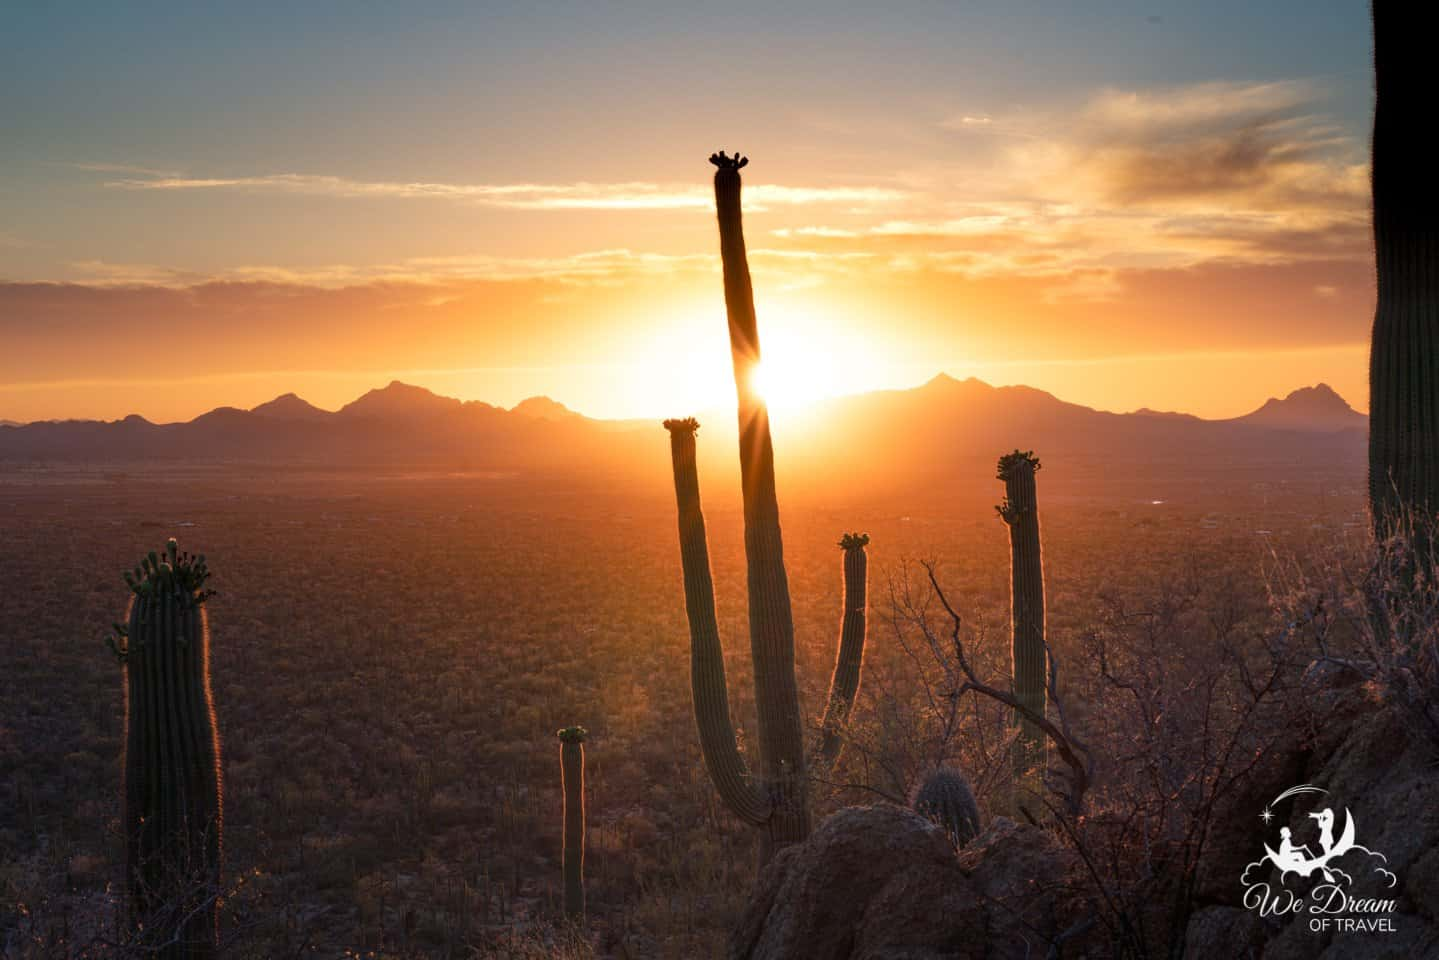 Sunset Photography from the Valley View Overlook in Saguaro National Park.